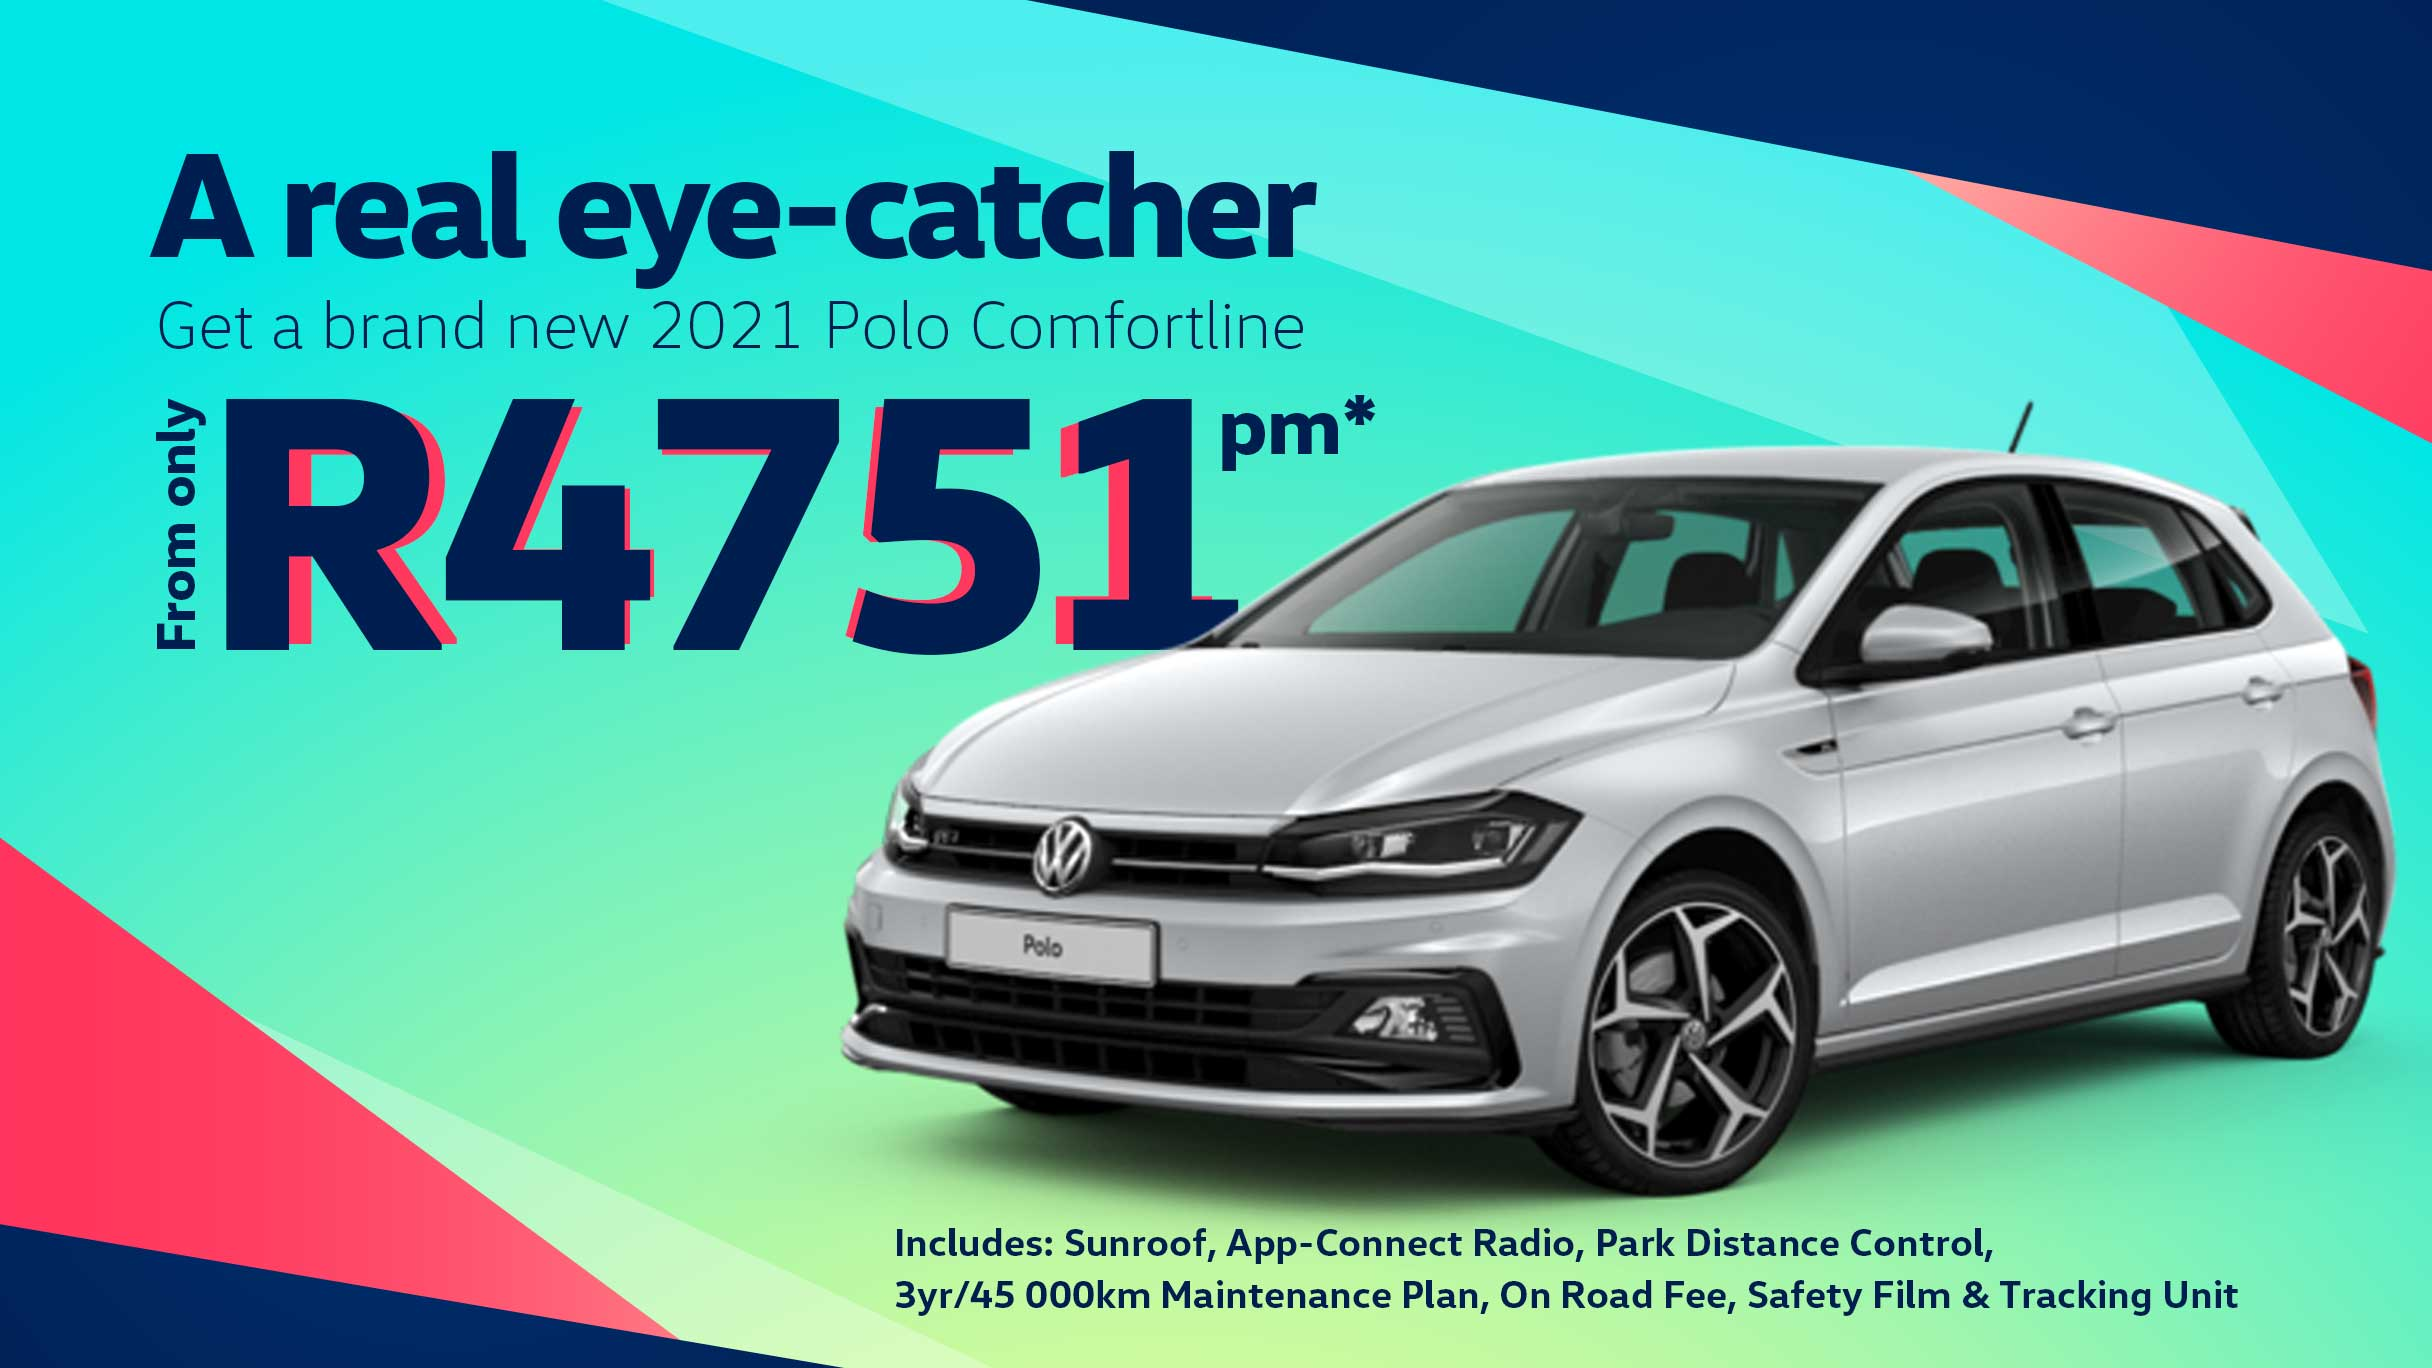 Barons Woodmead New 2021 Polo Comfortline offer